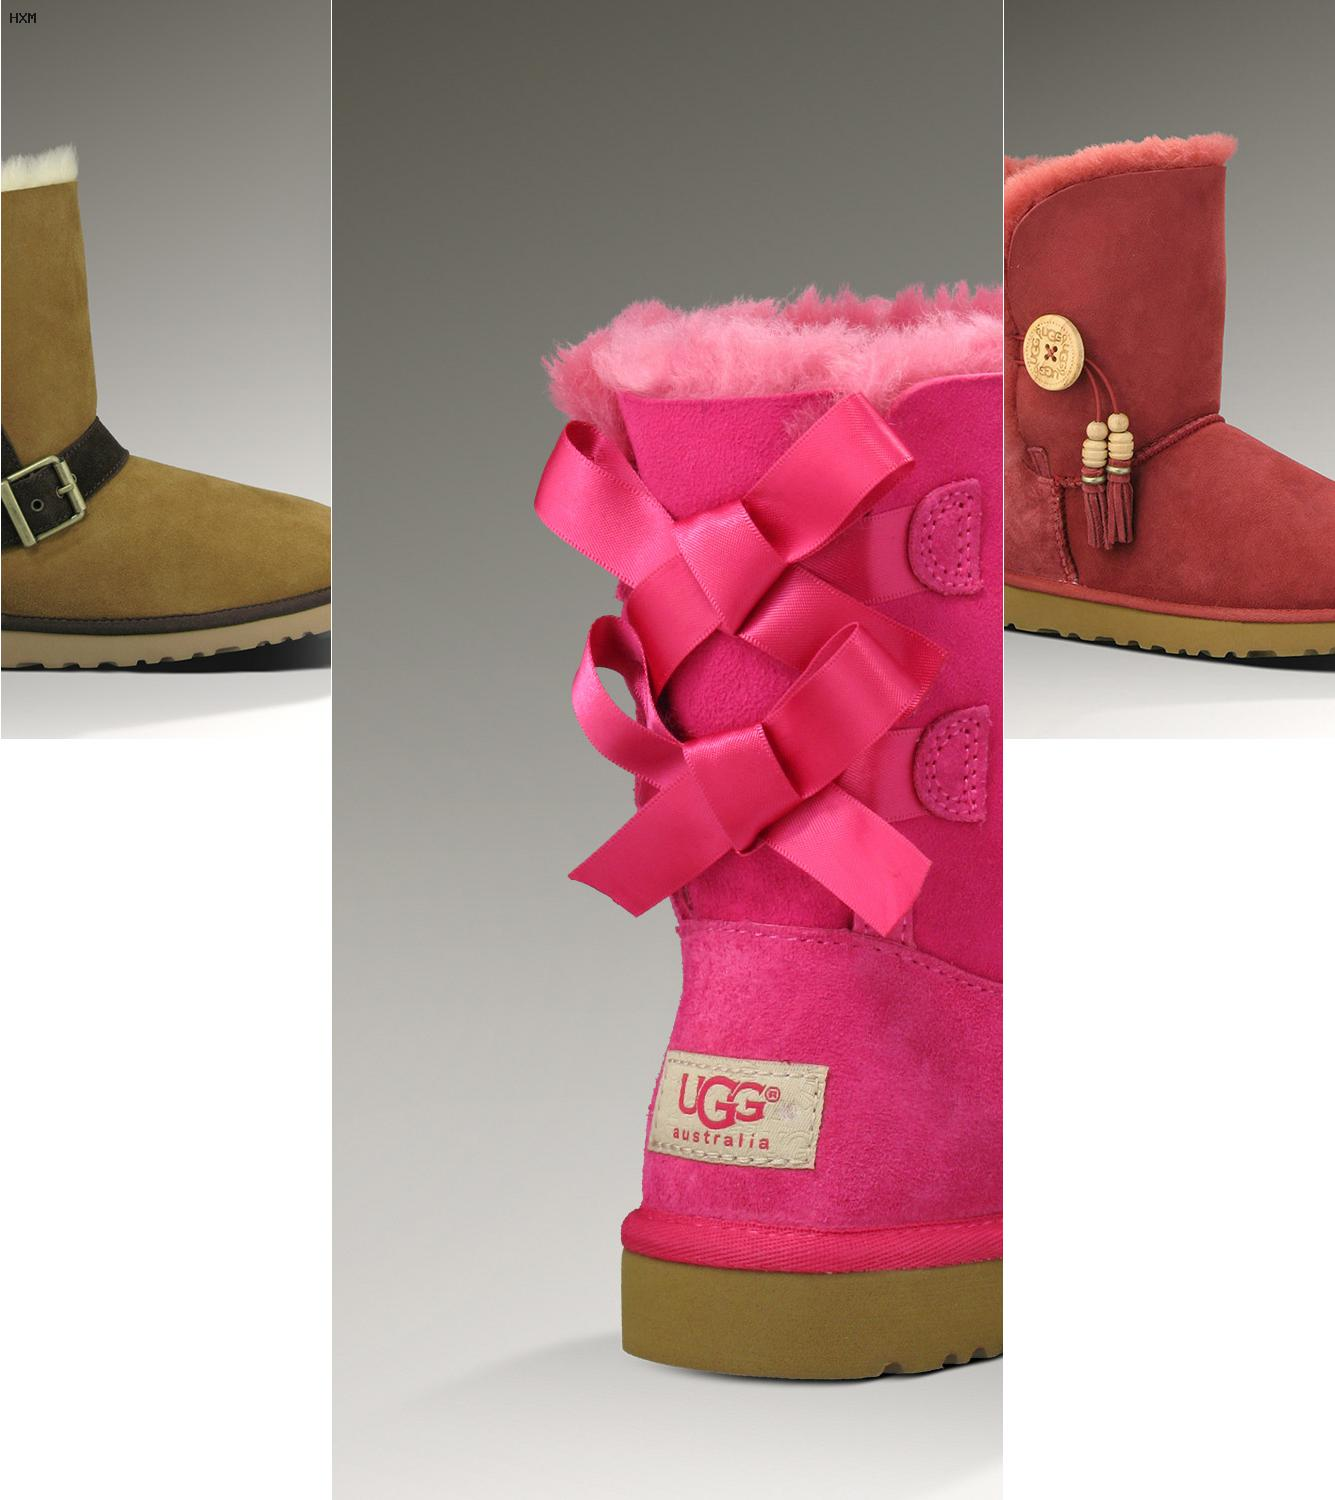 ugg boots alle farben